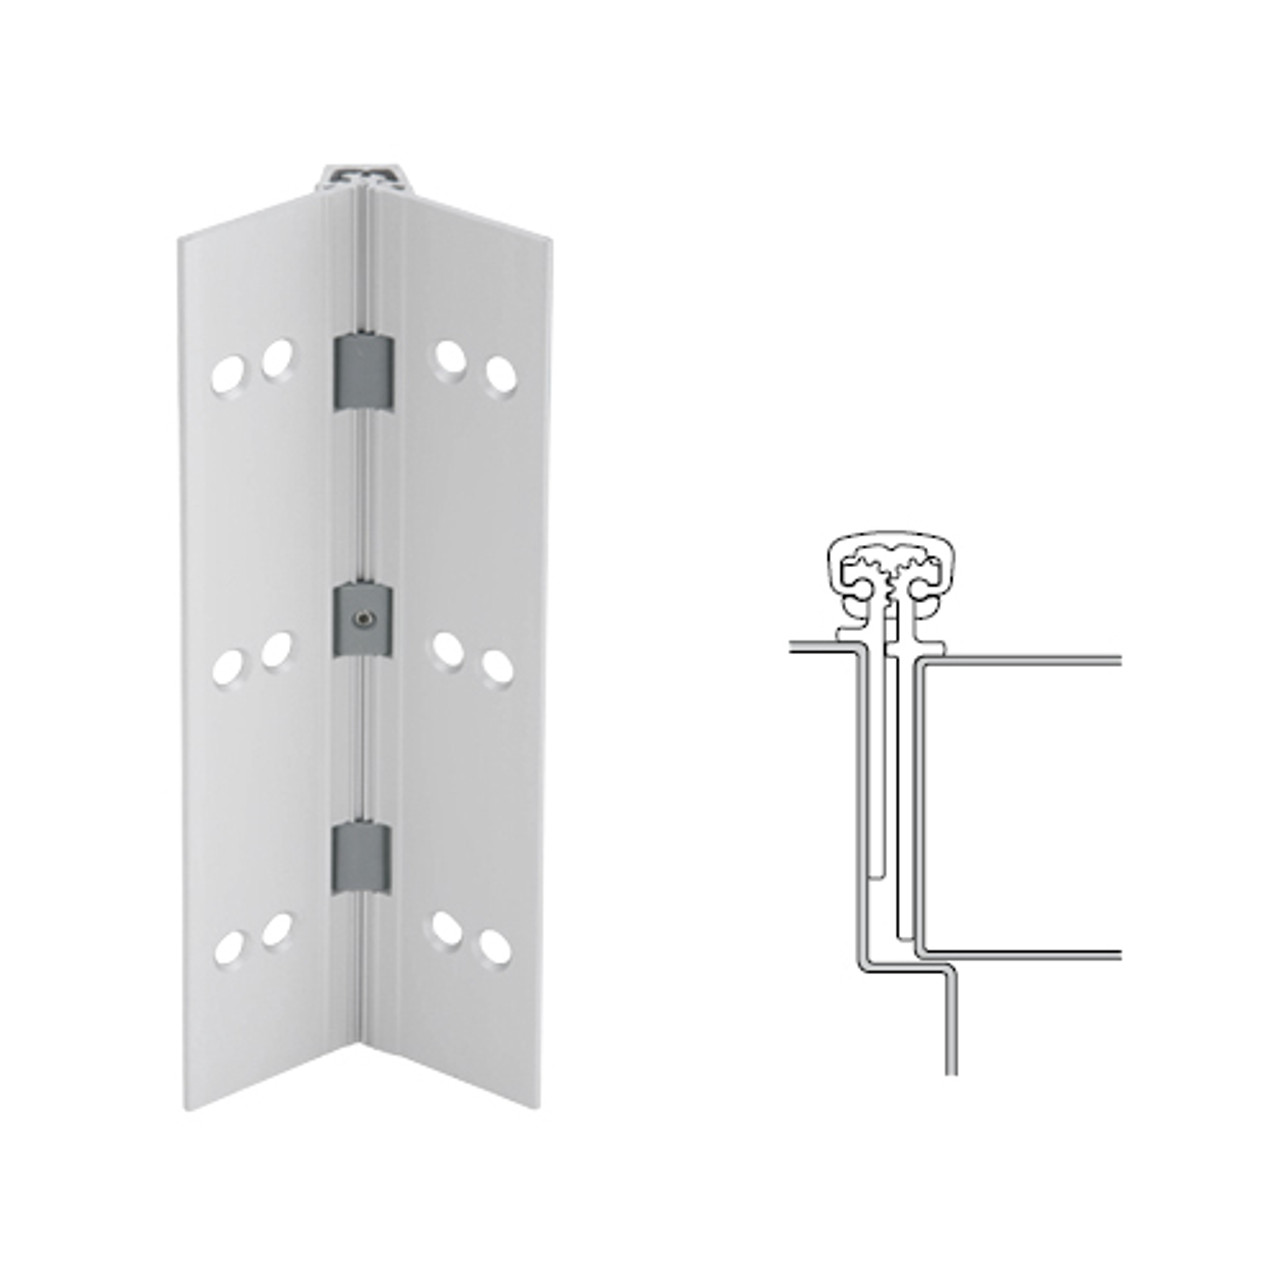 026XY-US28-85-SECWDWD IVES Full Mortise Continuous Geared Hinges with Security Screws - Hex Pin Drive in Satin Aluminum